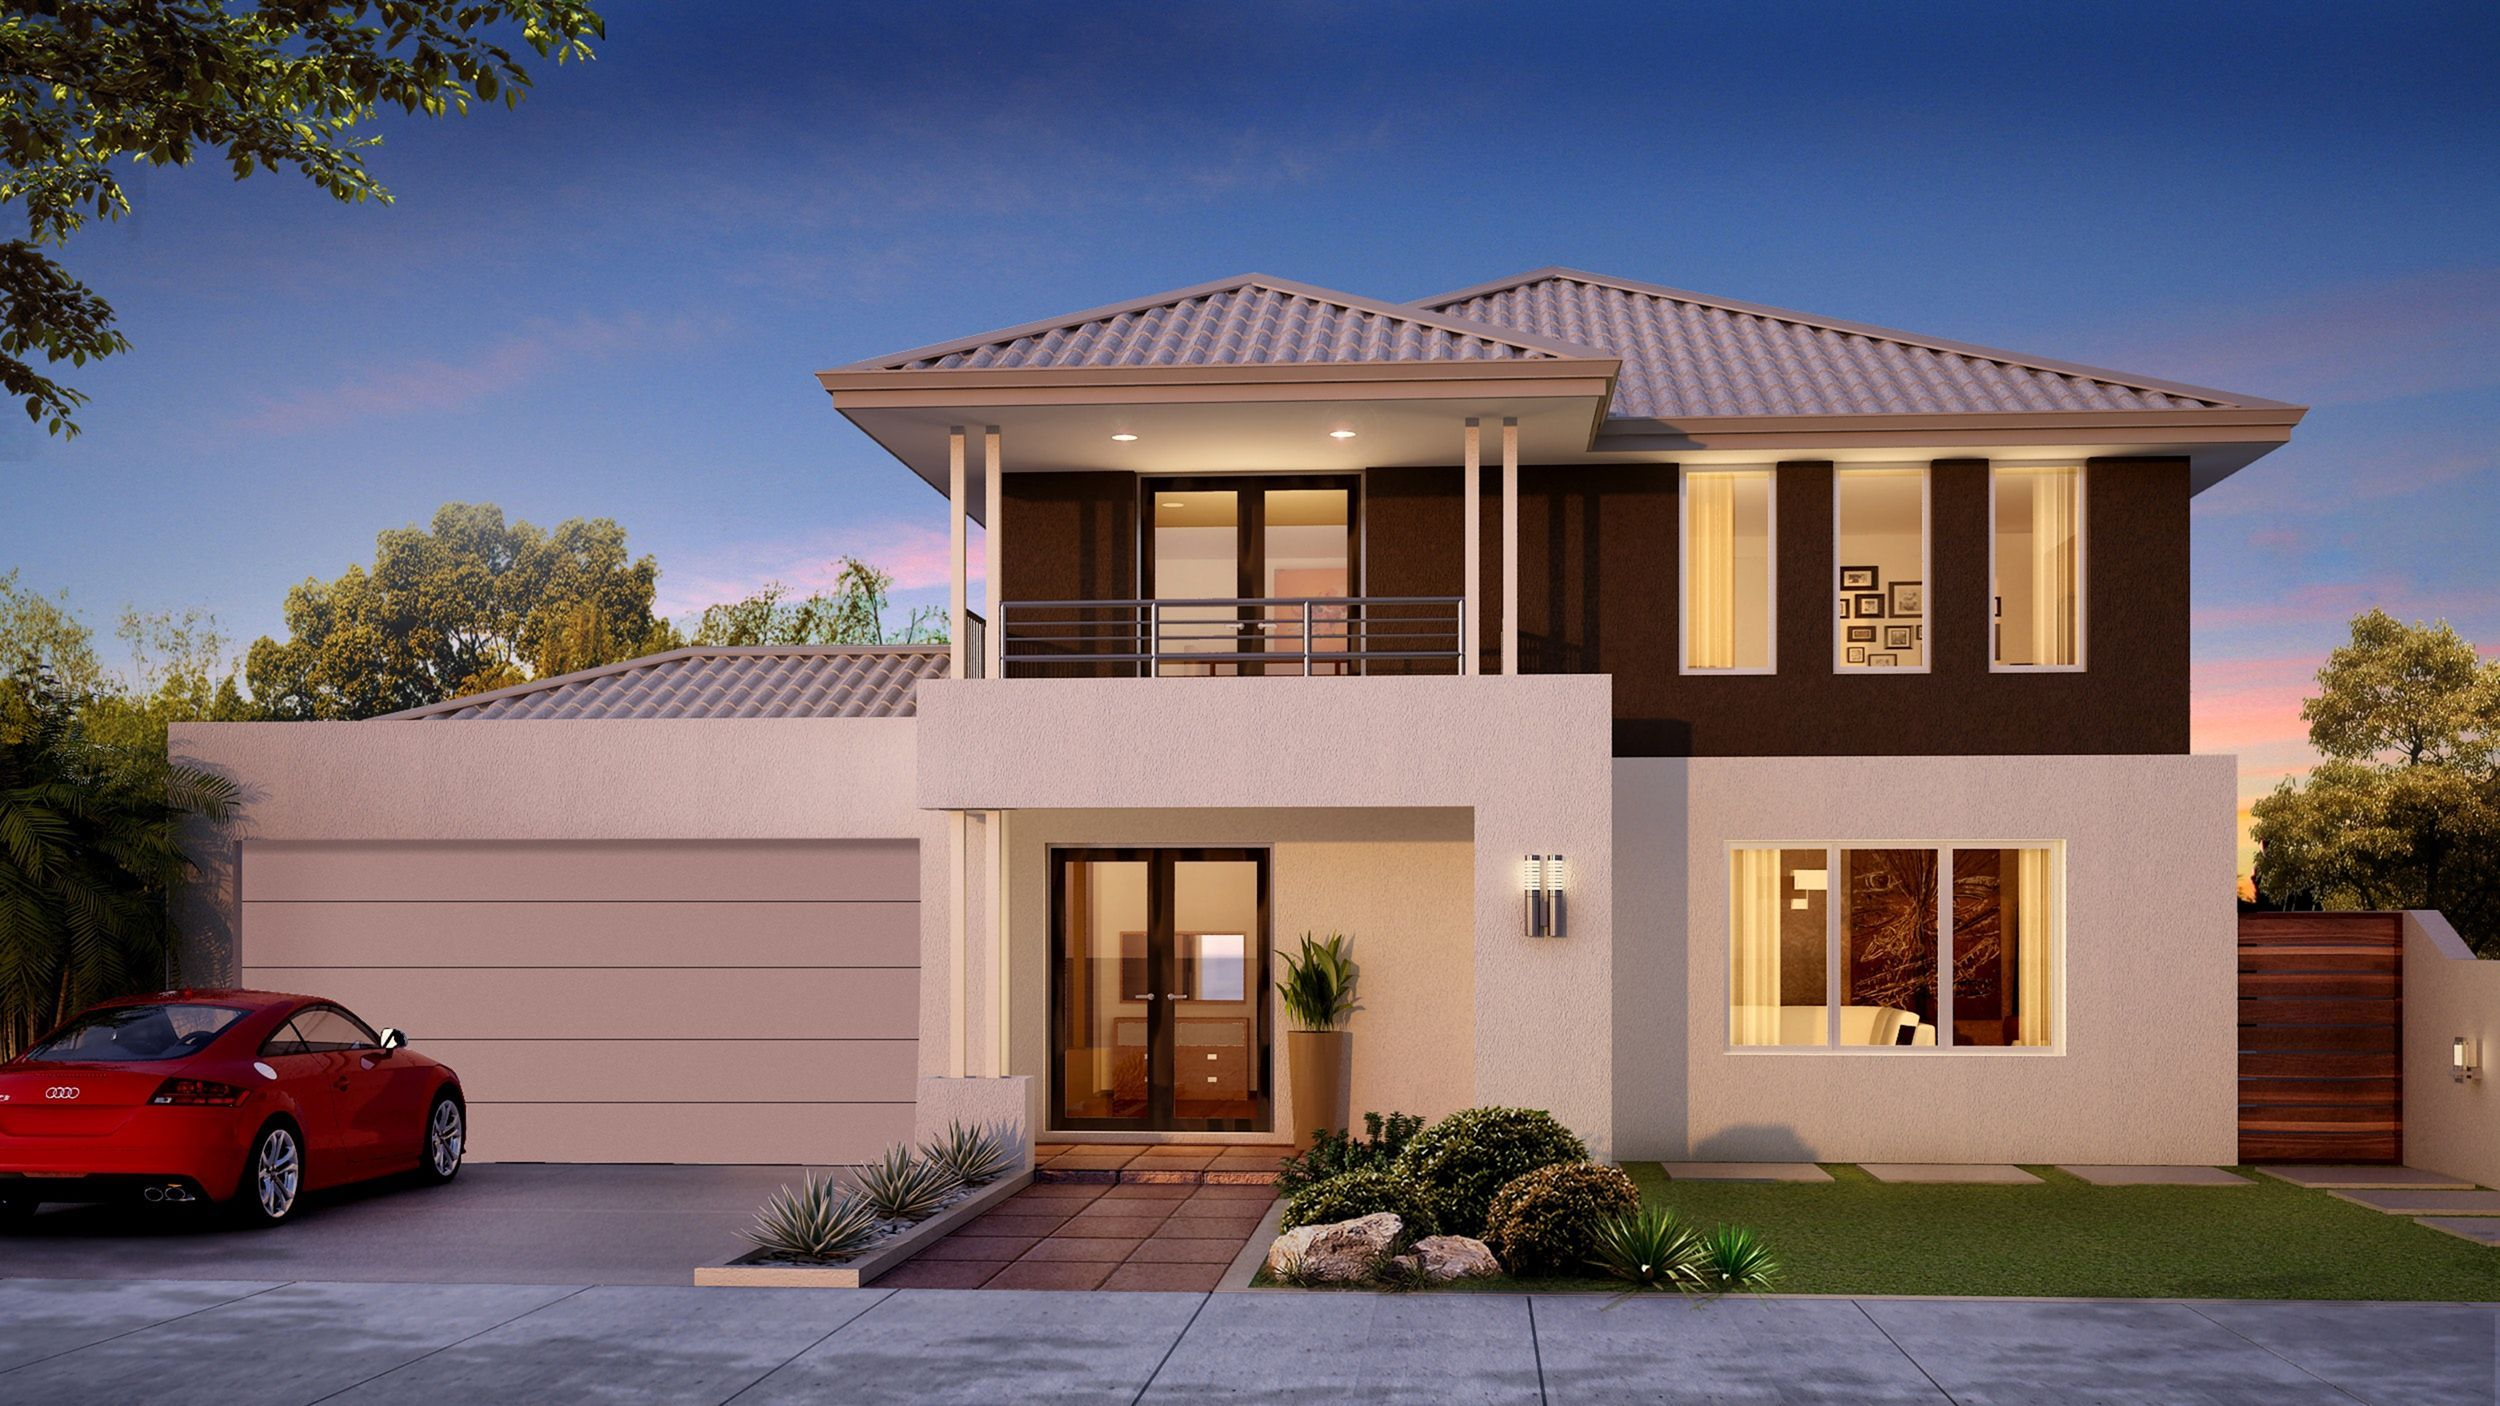 25 Fabulous Two Storey House Designs For Romantic Young Families Teracee Two Story House Design Double Storey House House Design Pictures